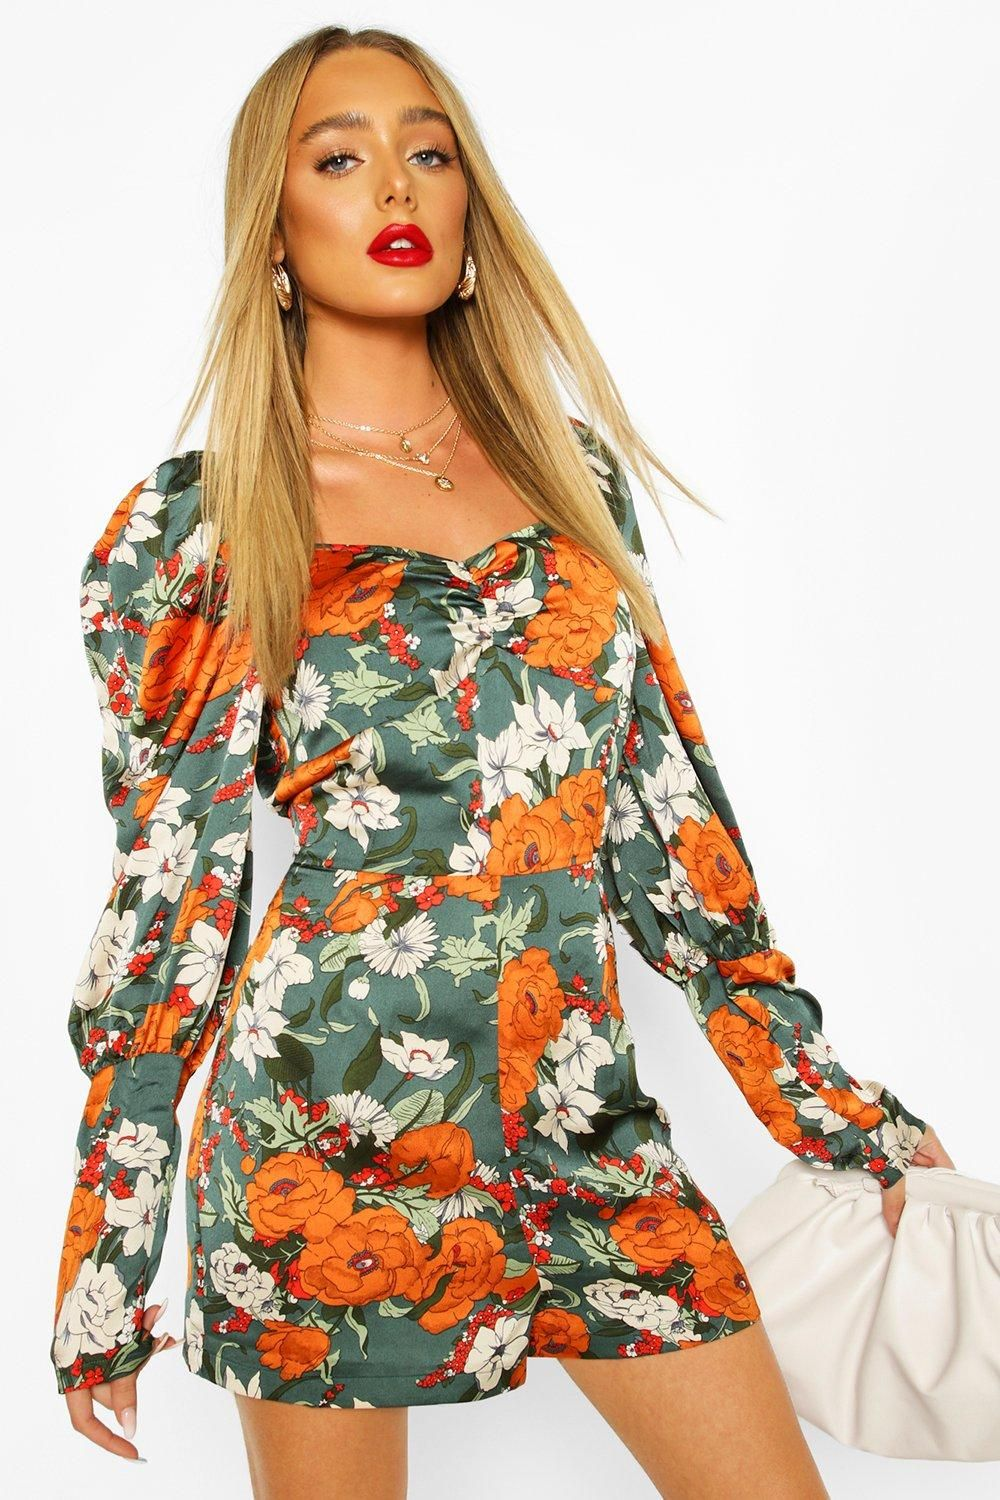 2020 Women Dress Casual Dress Print Plus Size Holiday Clothes Smart Dress Code For Ladies